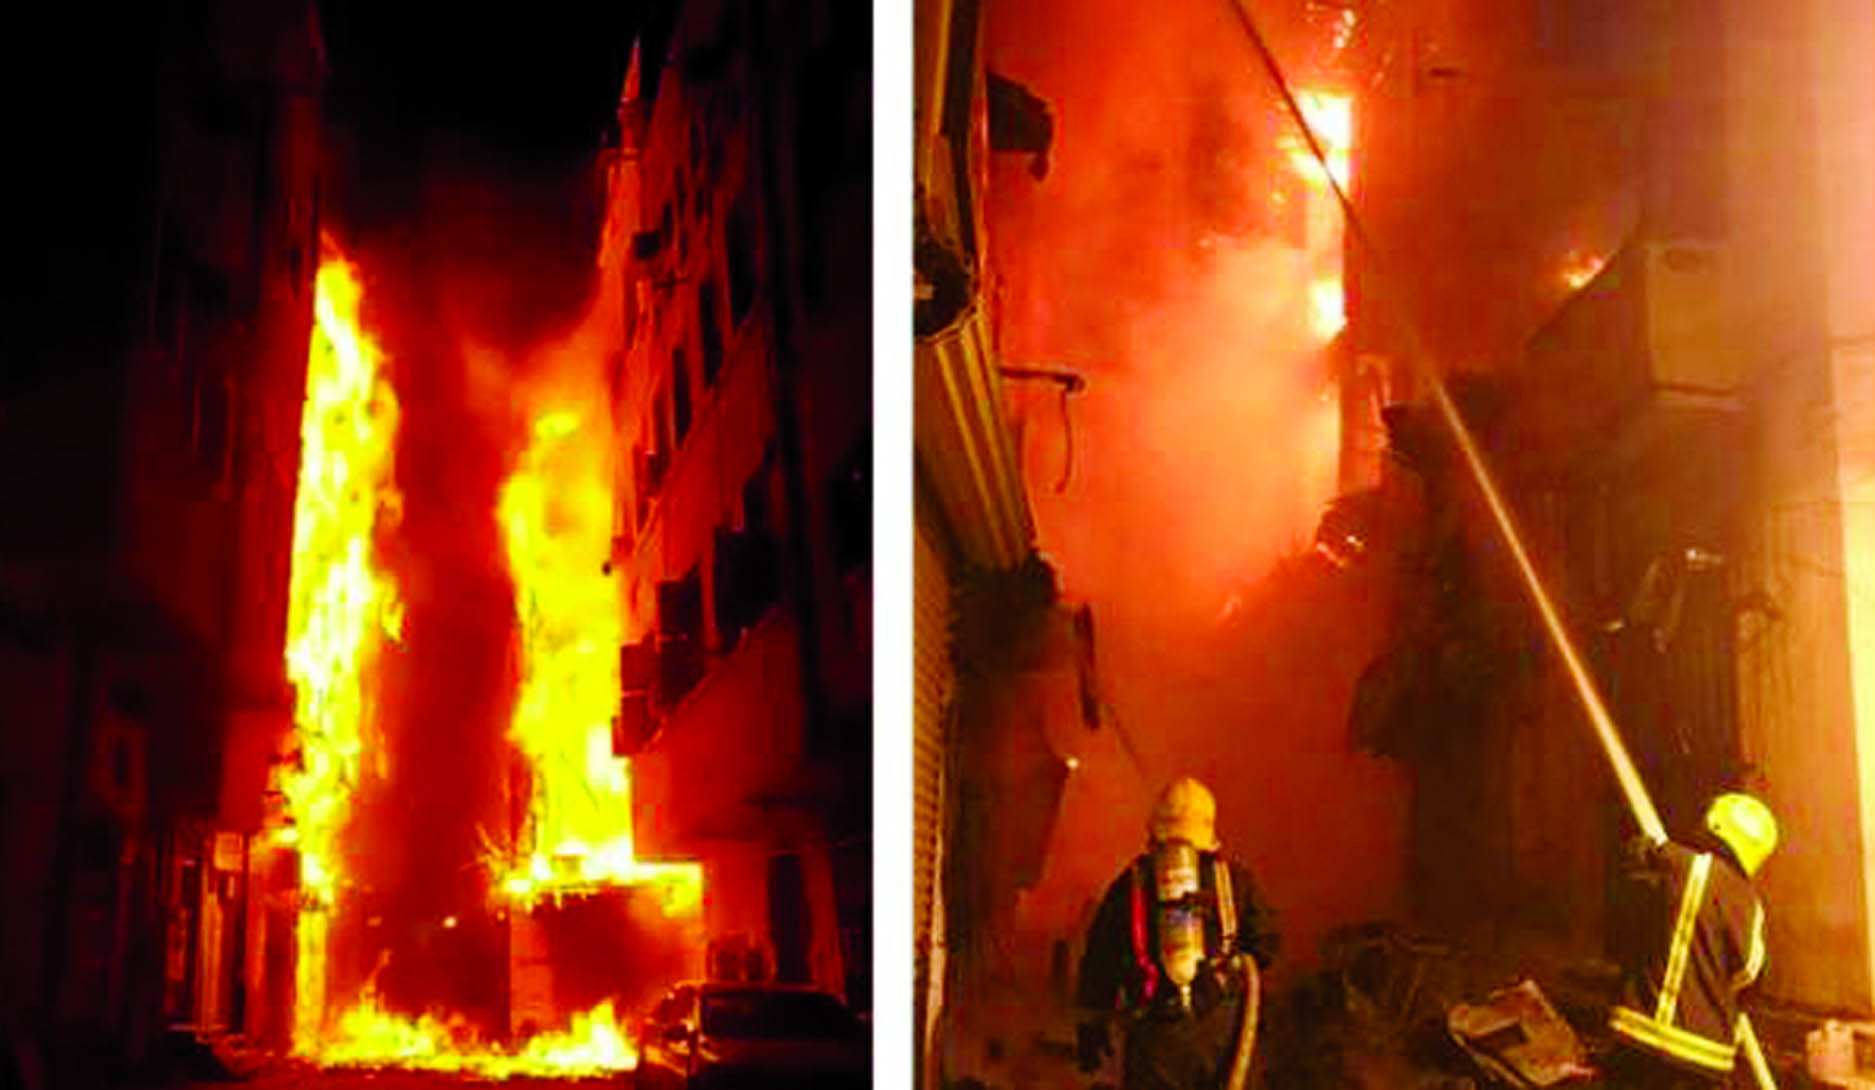 6 buildings in Jeddah's old town go up in flames